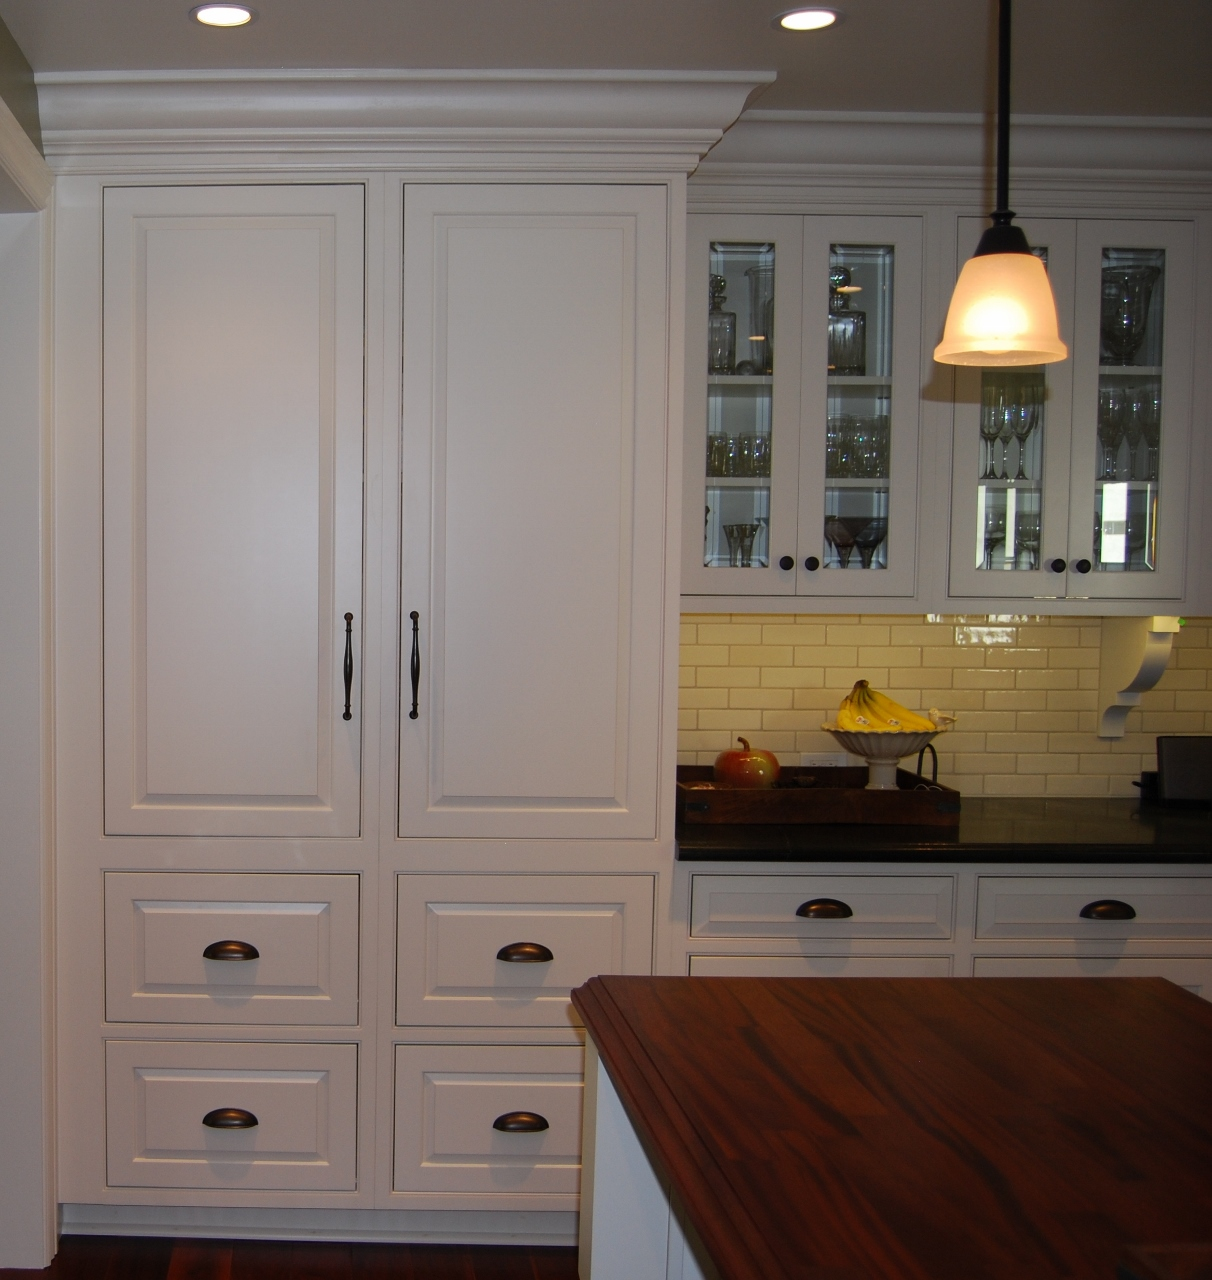 Pantry Cabinet: Floor To Ceiling Pantry Cabinets With